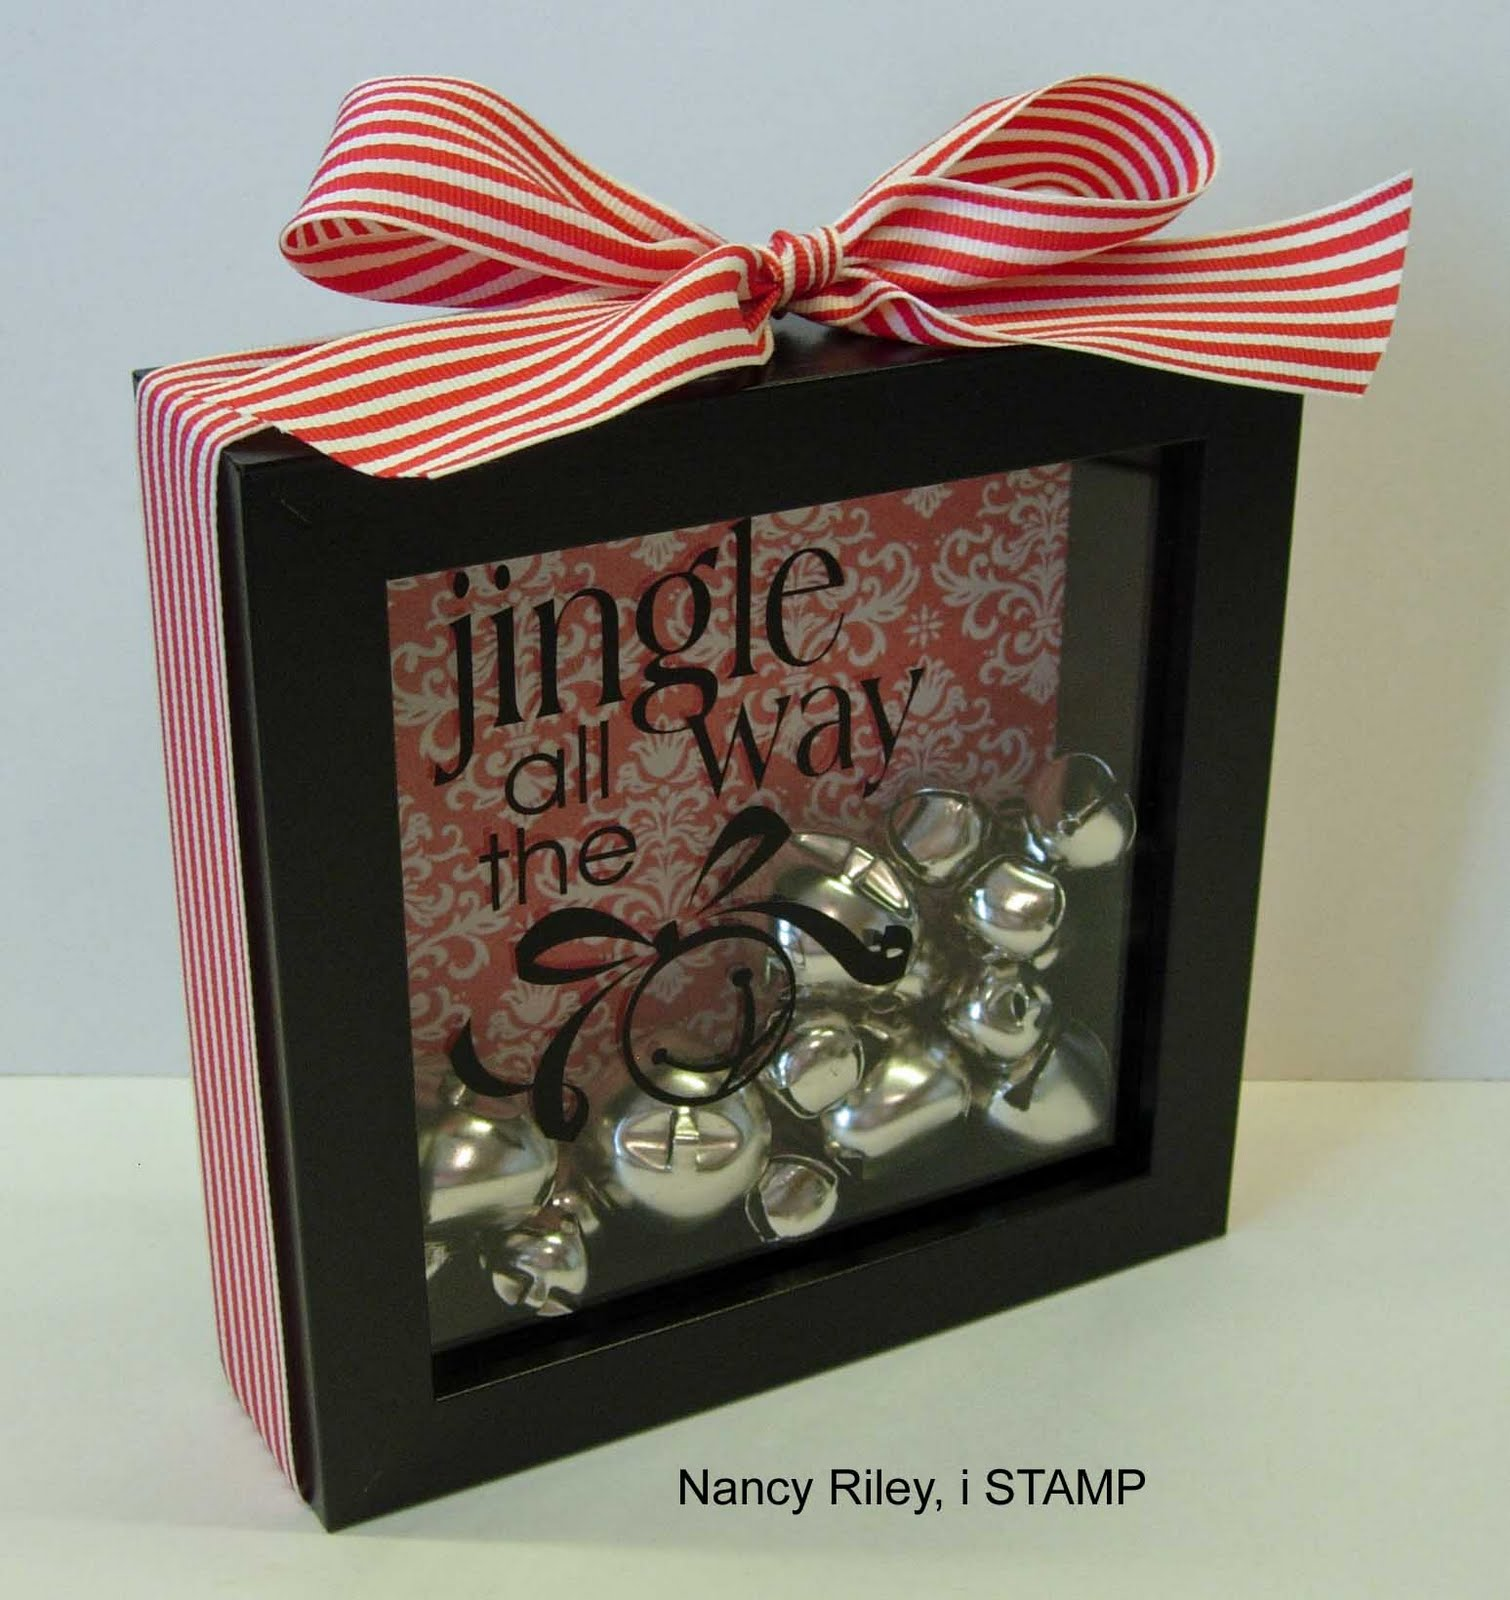 I STAMP By Nancy Riley: HOMEMADE CHRISTMAS GIFTS